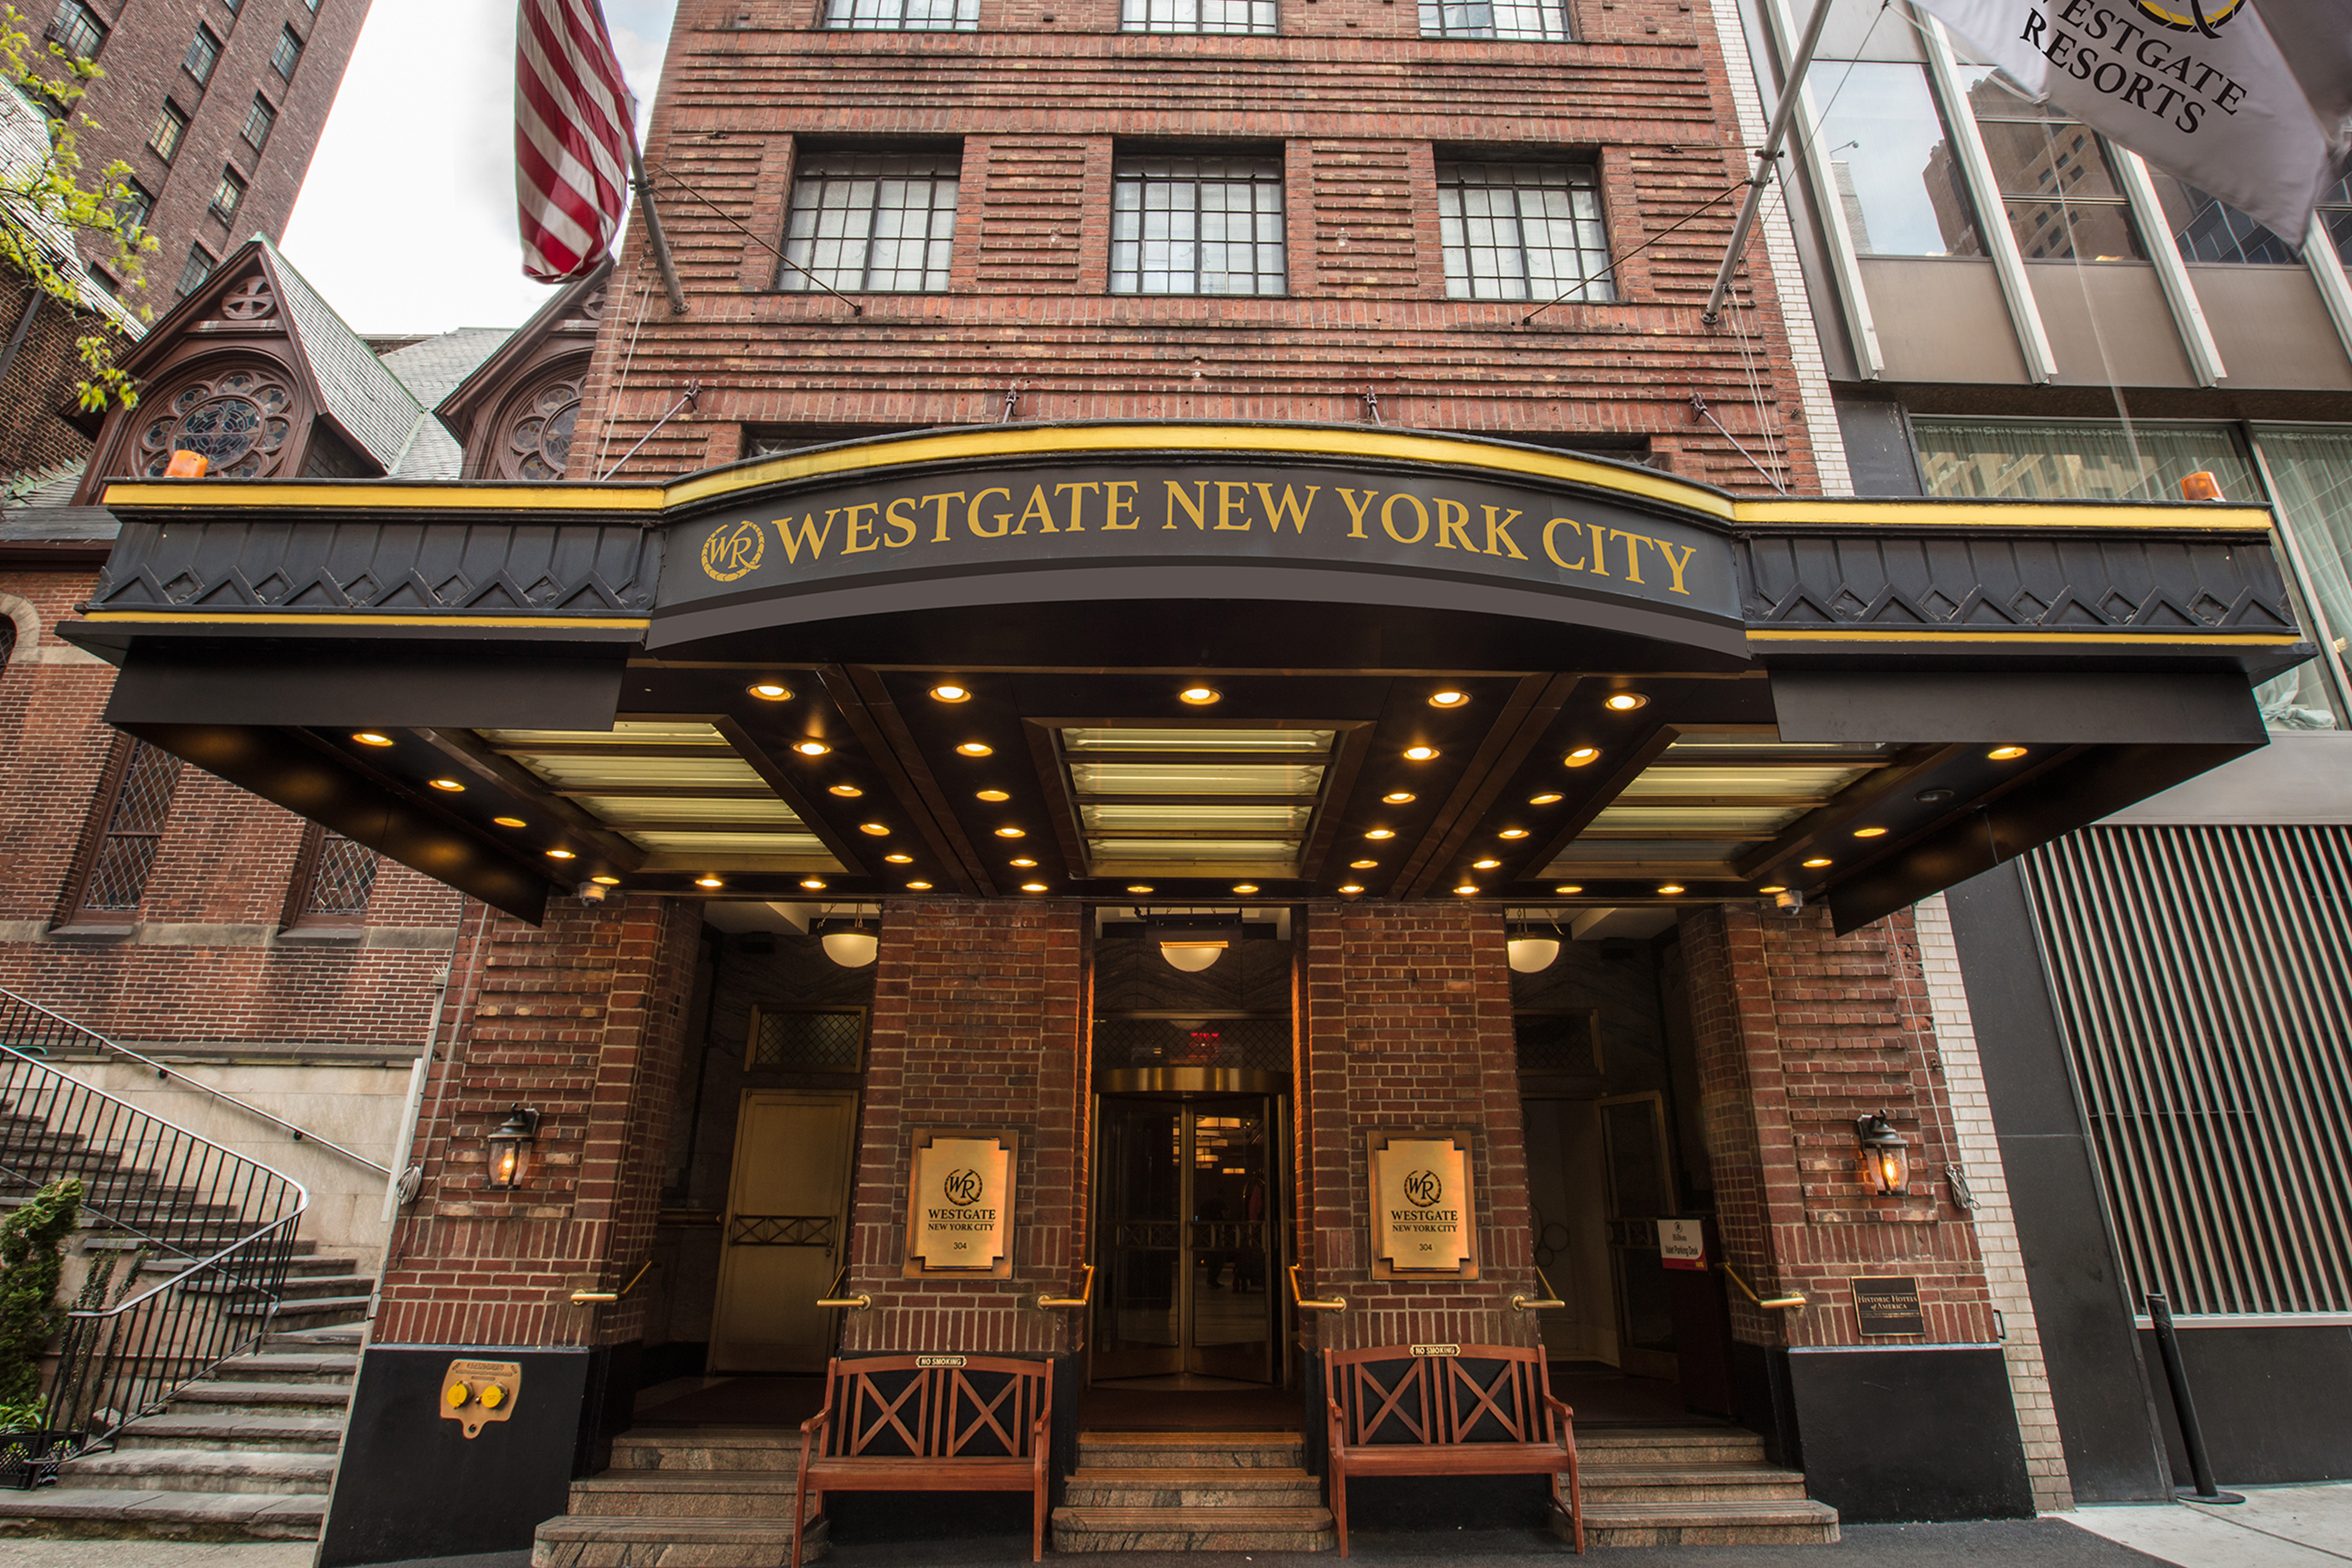 New York City Tourist Map and Transit | Westgate New York City | Best Tourist Attractions in NYC